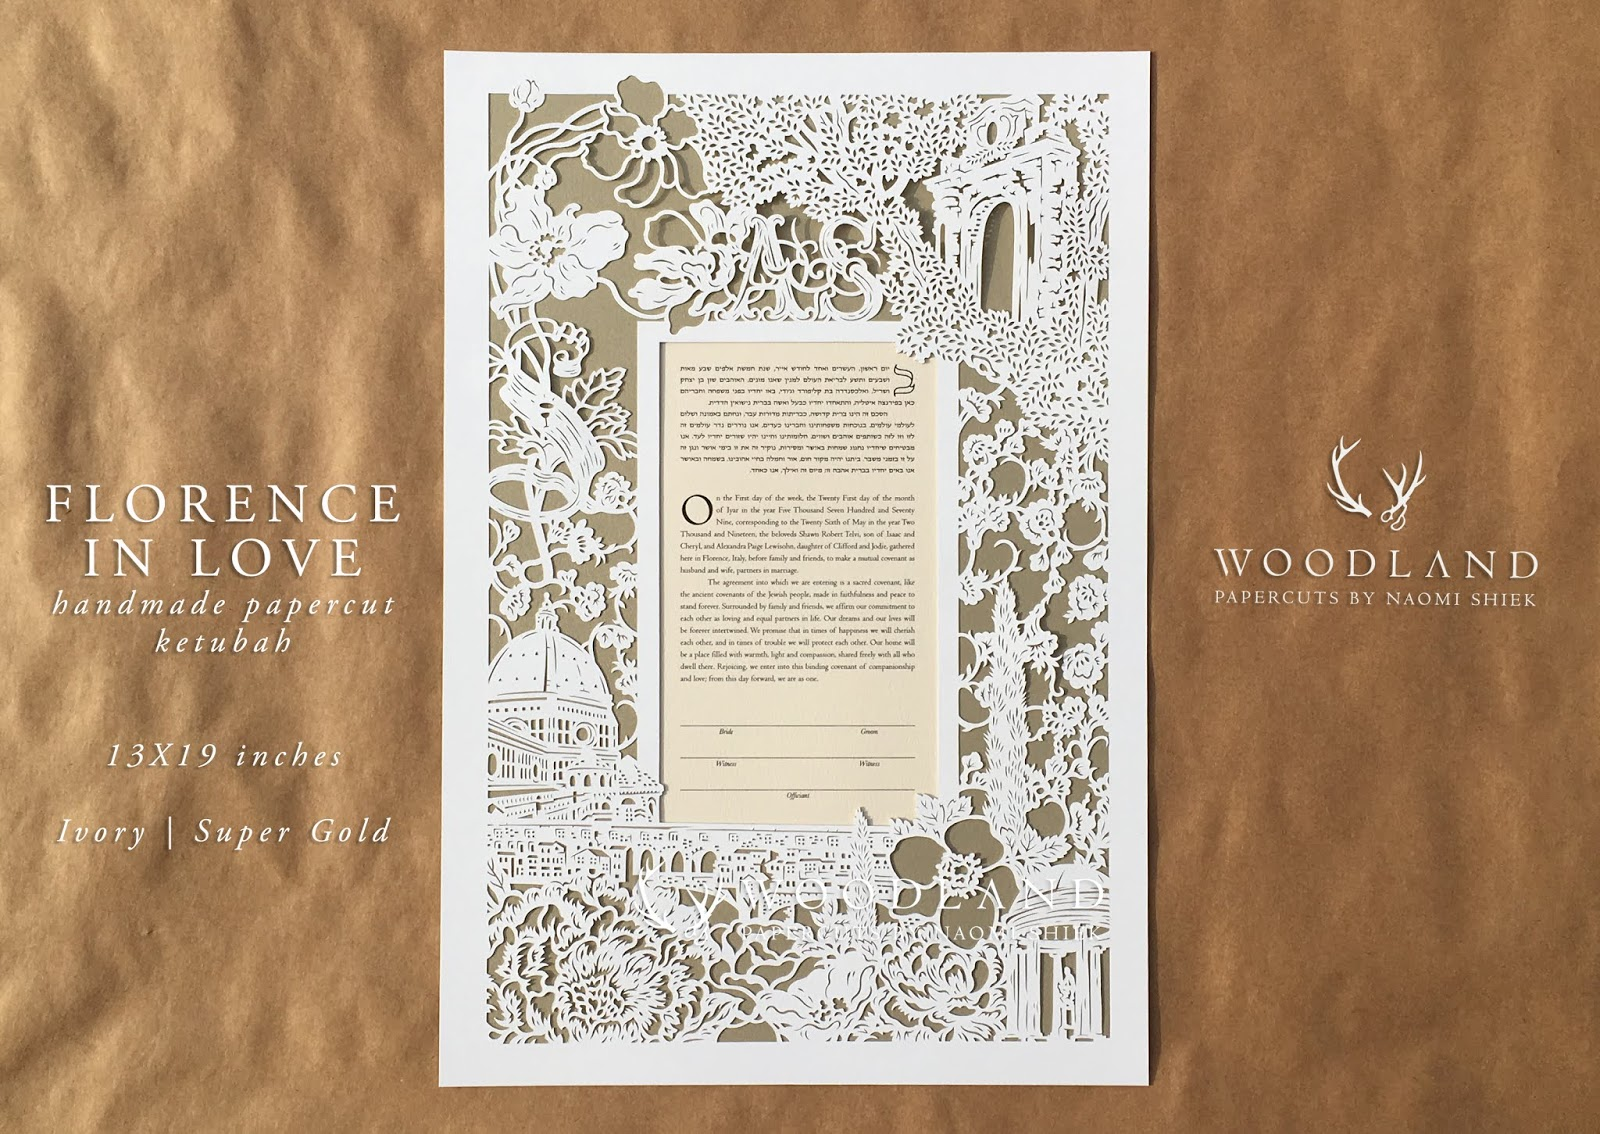 Handmade custom papercut artwork, this papercut ketubah was commissioned for a destination wedding in Florence, Italy.